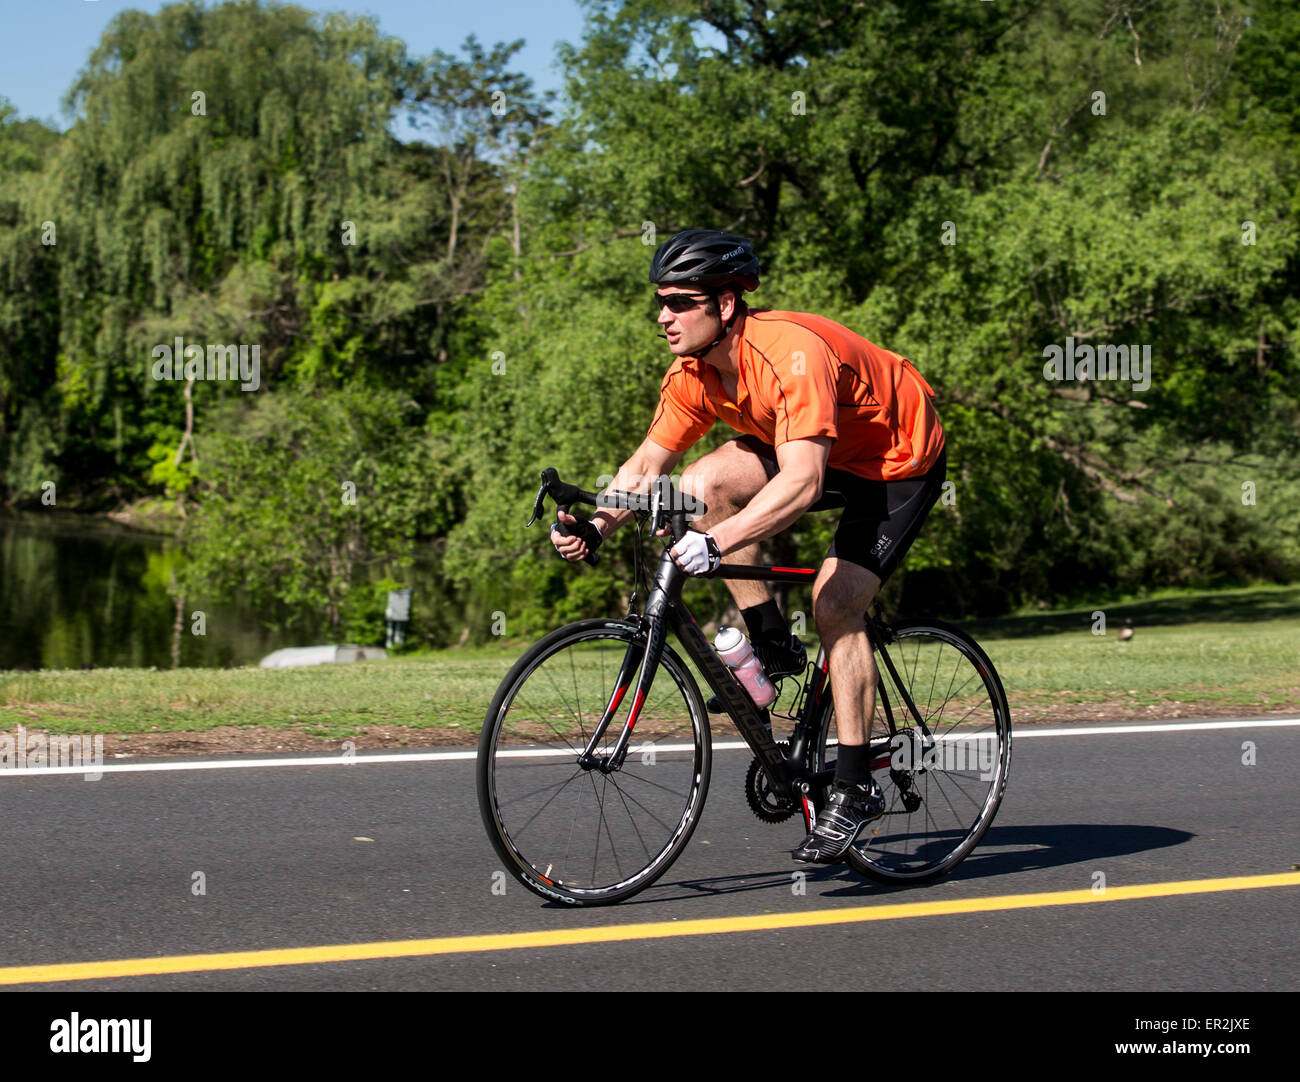 Man riding a road bike on a paved roadway Stock Photo: 83037318 - Alamy